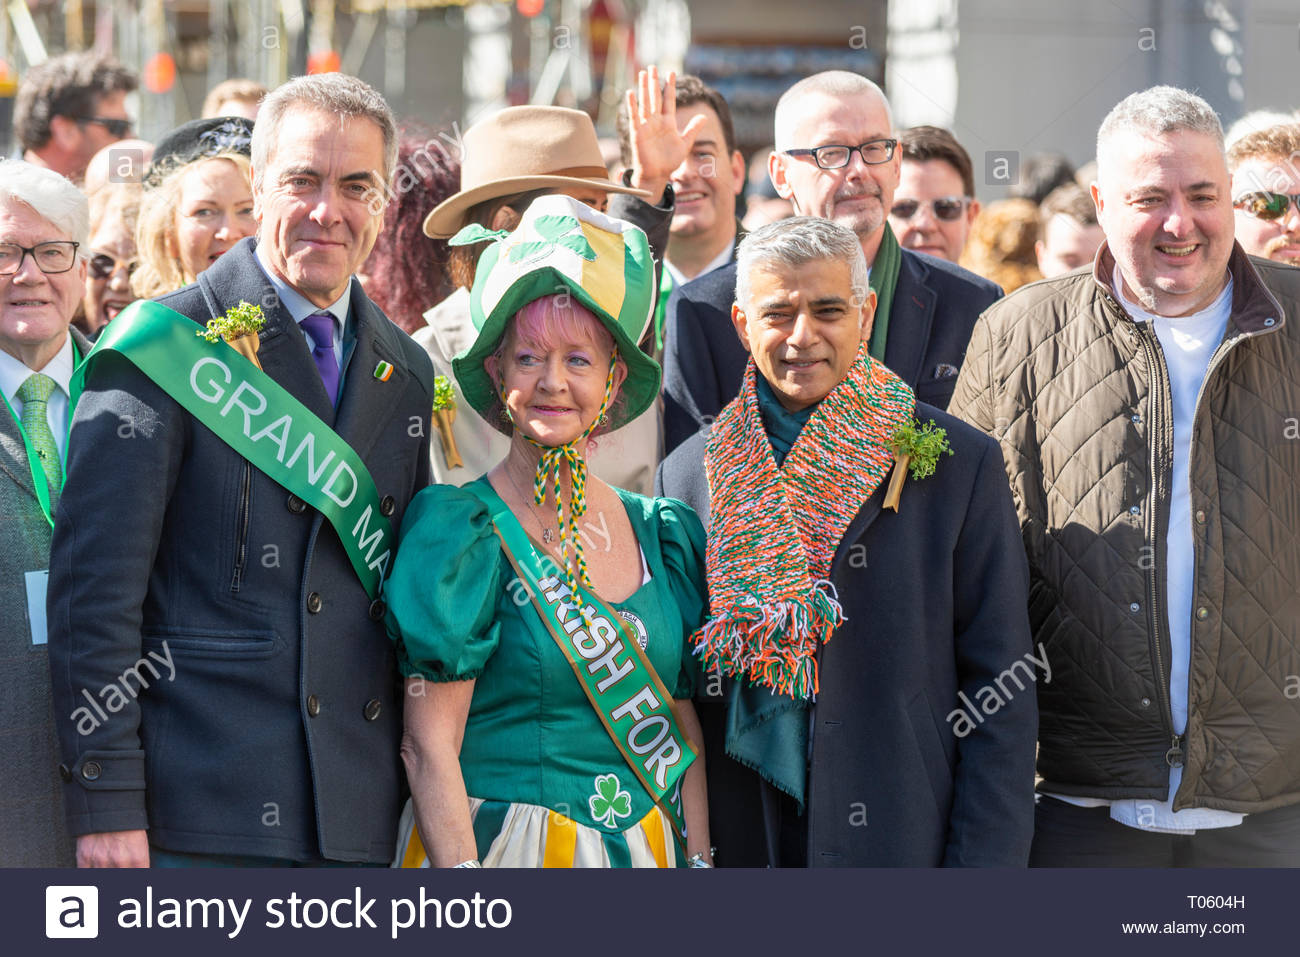 Traditional St Patrick's Day Parade through London, UK had actor James Nesbitt as Grand Marshall joining Mayor of London Sadiq Khan at the head of a huge procession. Chef Richard Corrigan and Commissioner of the London Fire Brigade Danielle Cotton also attended - Stock Image